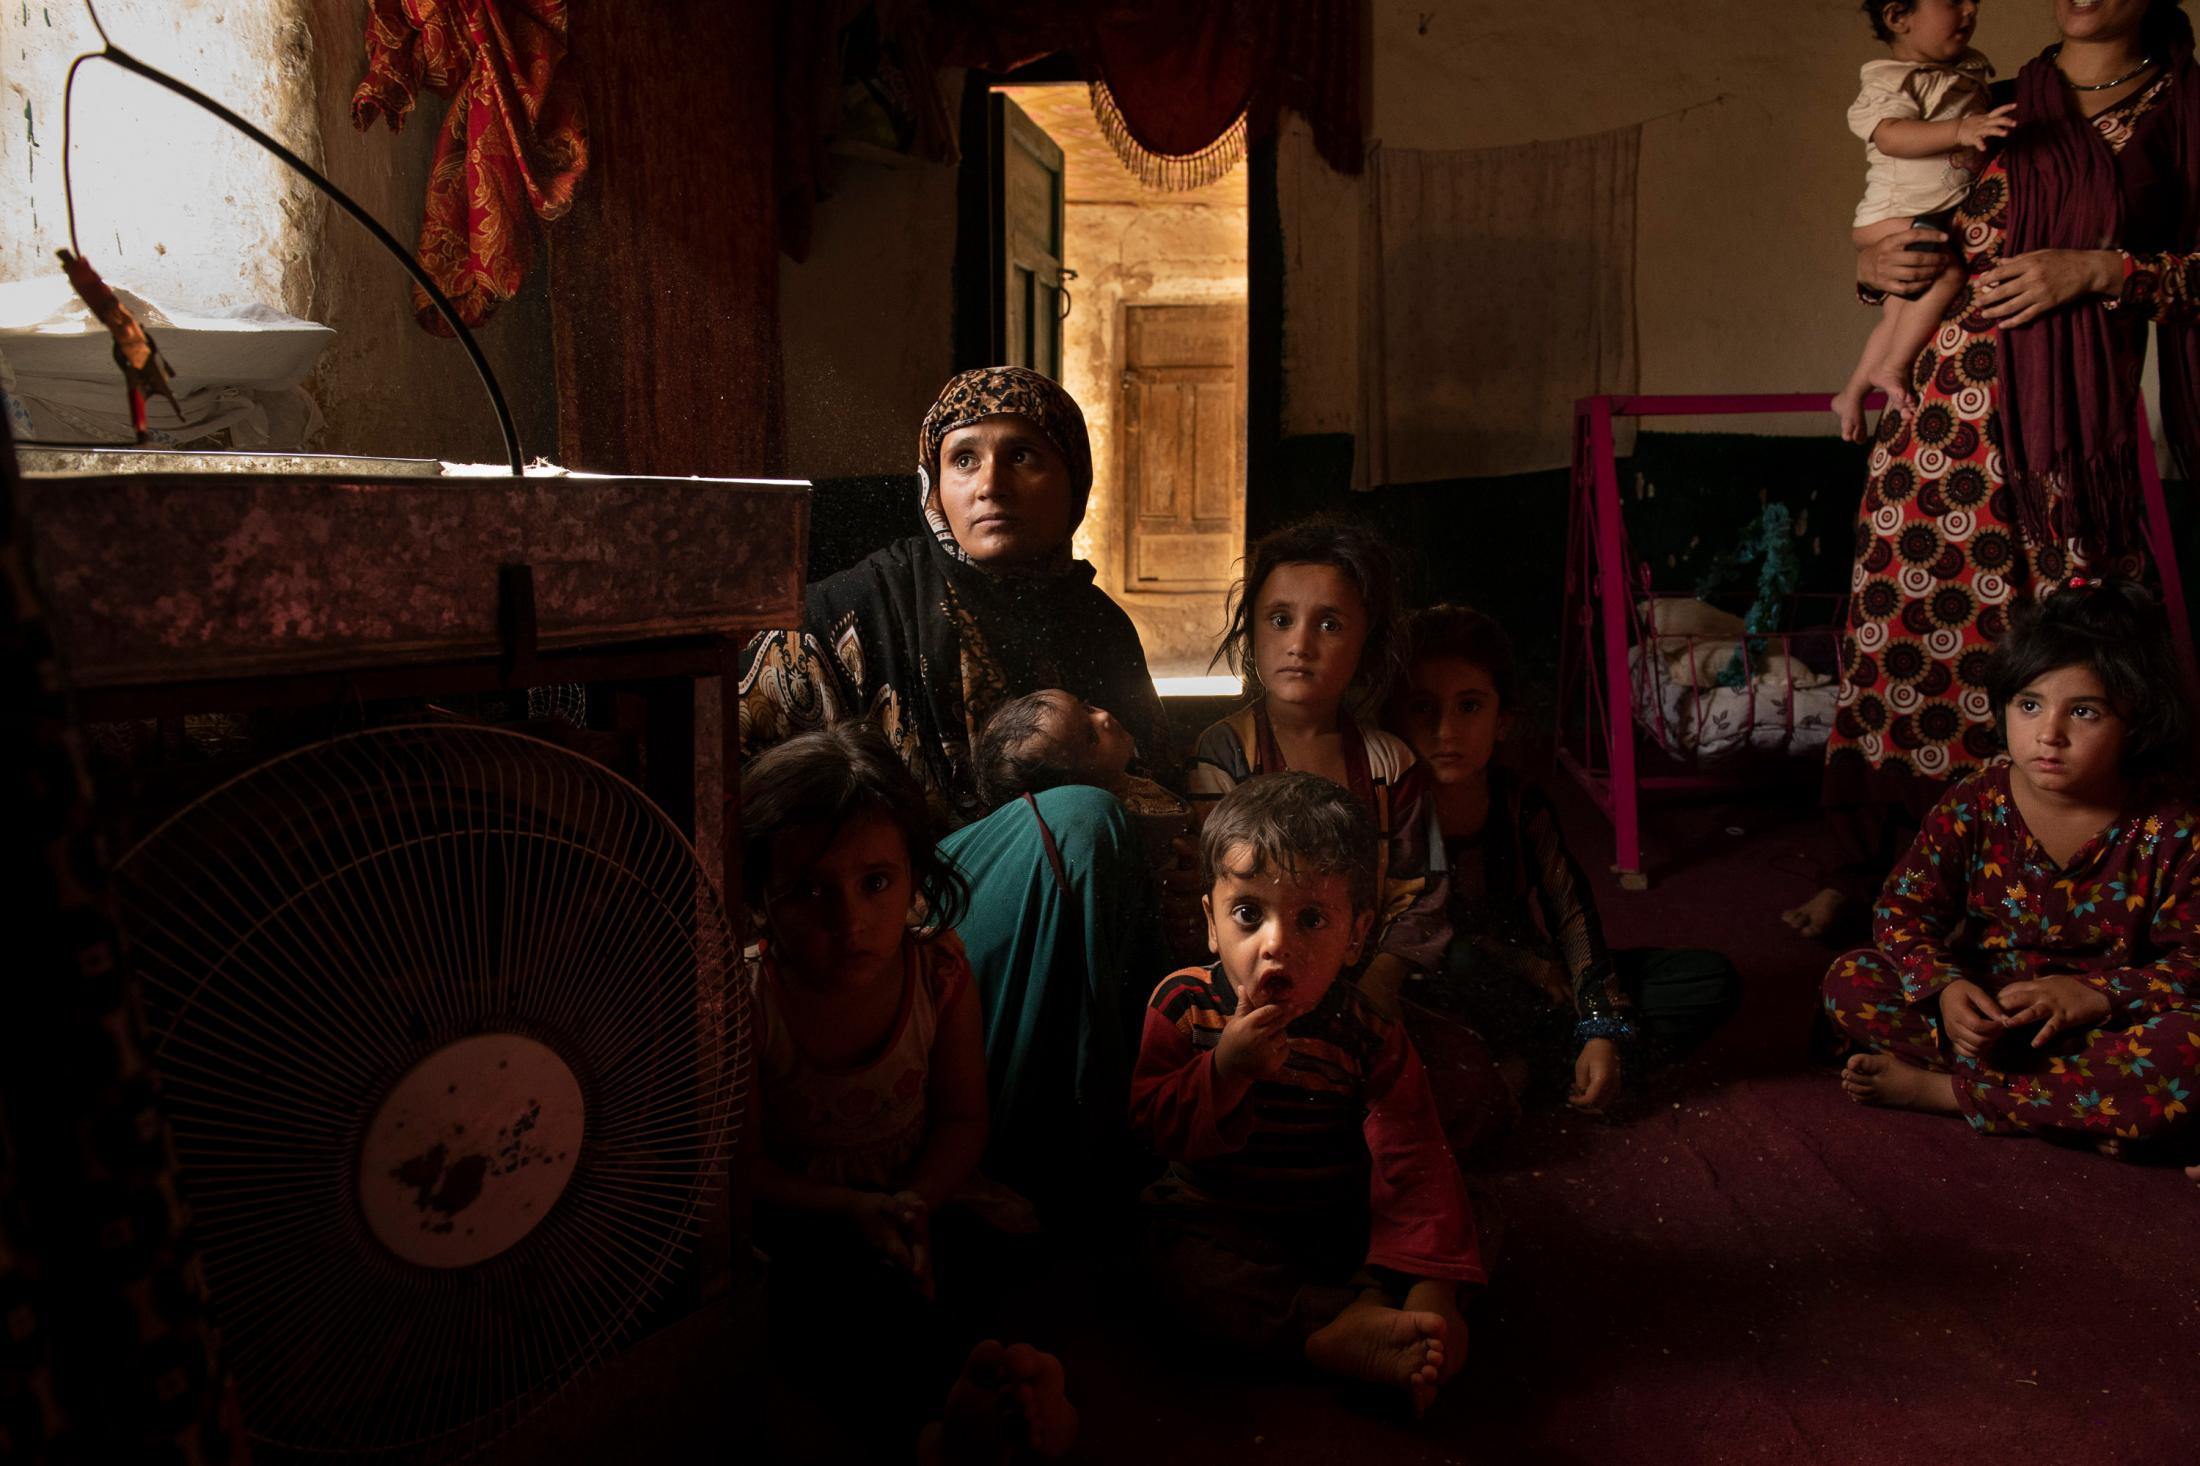 DOAGU VILLAGE | AFGHANISTAN | 8/27/18 | Fatana (24) sits with her 4 children inside their small room at her in-laws that she and her late husband used to live in. She was 5 months pregnant when her husband, Amanat Khan (27) and an ANP officer, was shot in fightings against Taliban in Niazi Village, not too far from their home village. Kiana Hayeri for the New York Times